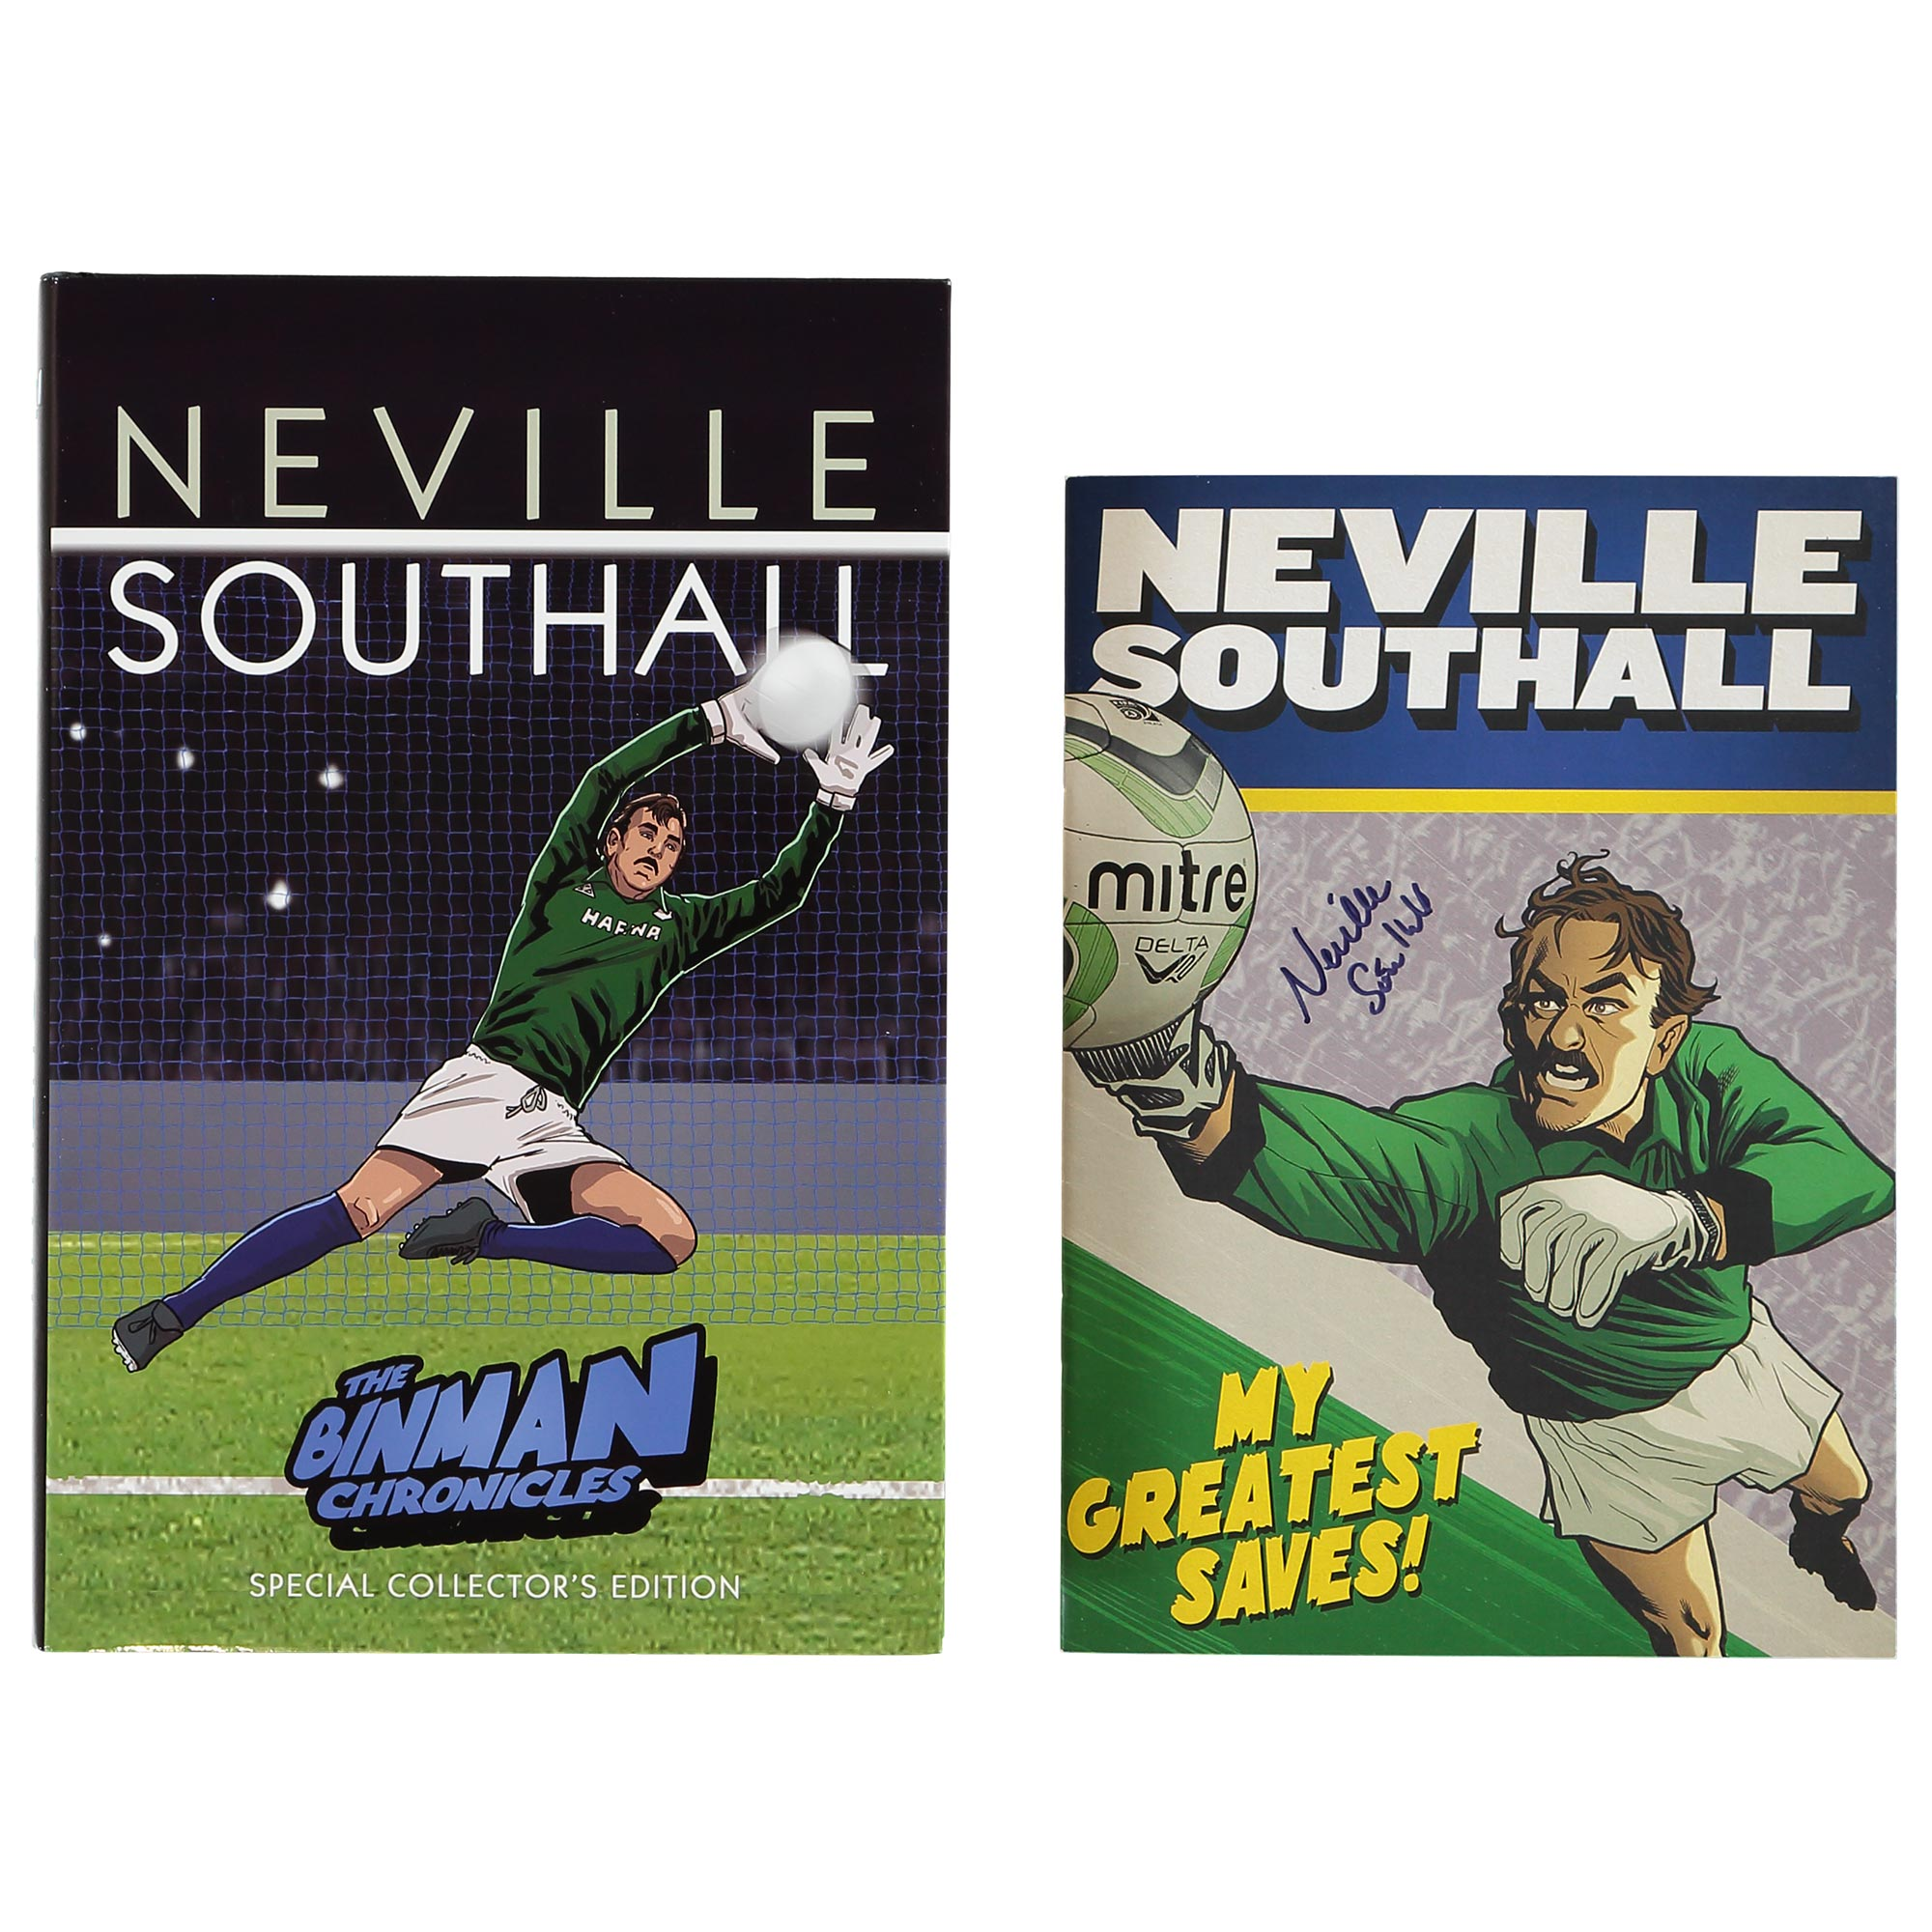 Everton Neville Southall The Binman Chronicles Book - Special Signed E